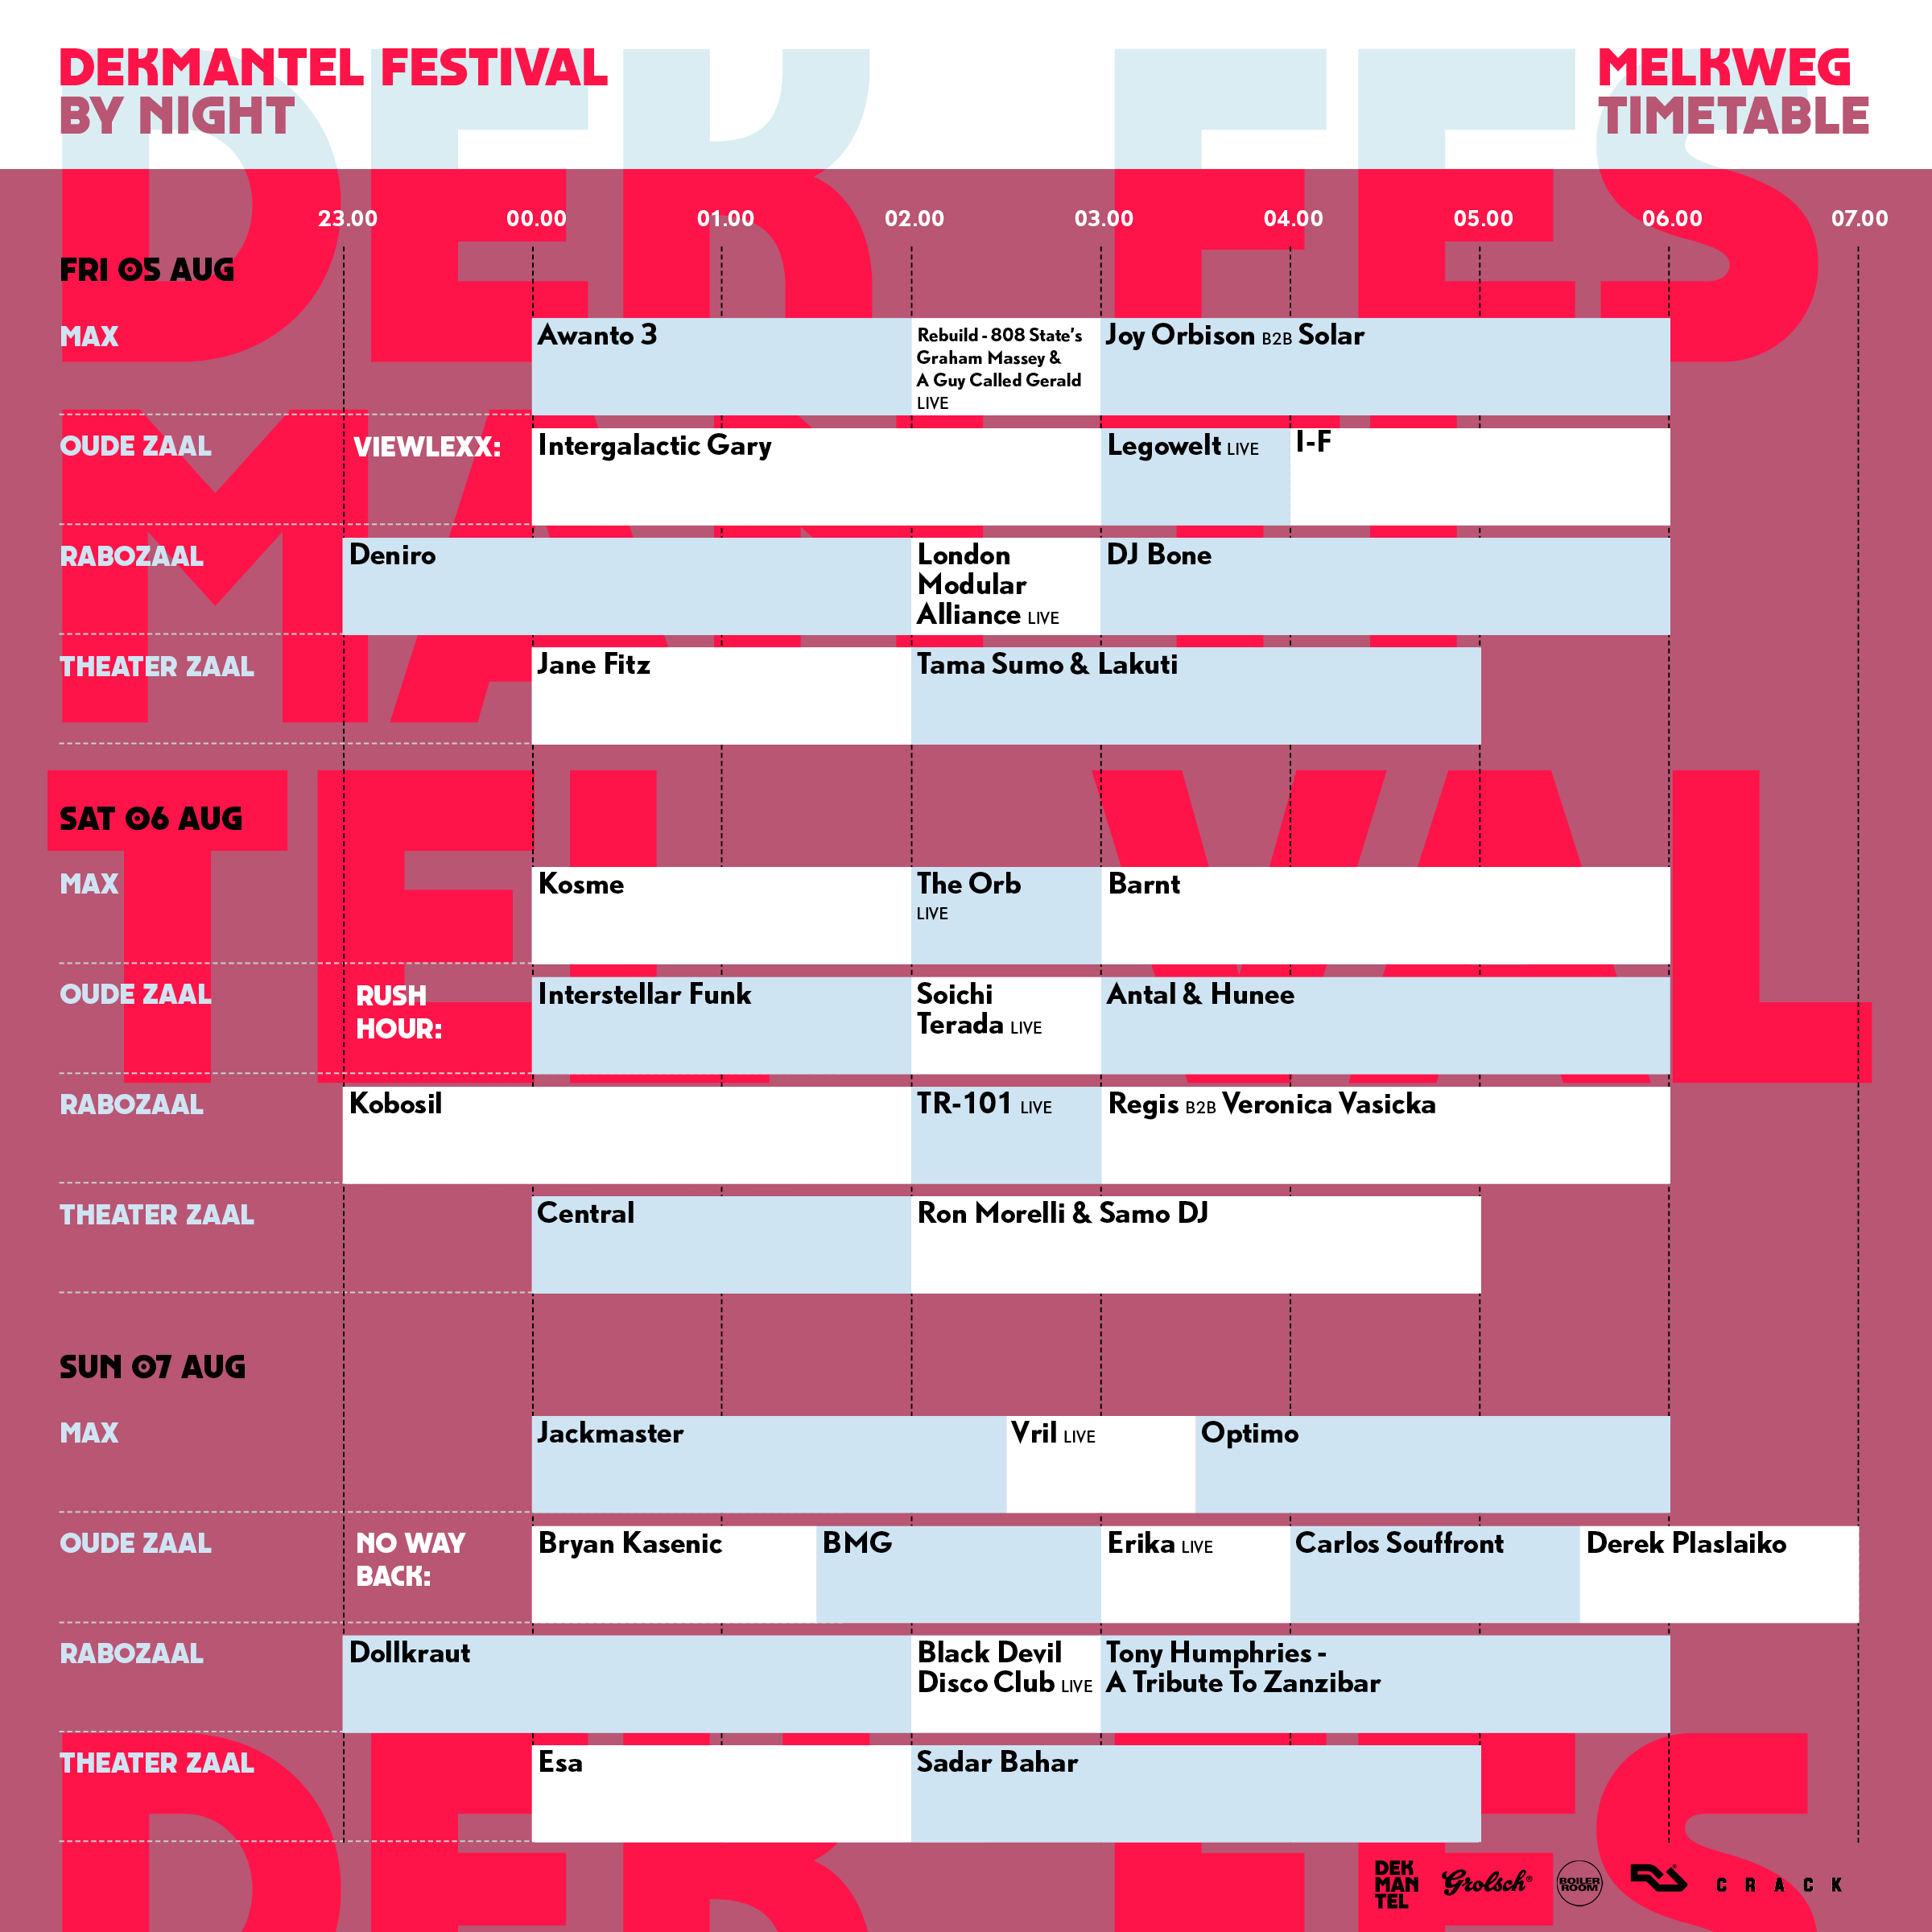 studio_colorado-dekmantel_festival-night-timetable